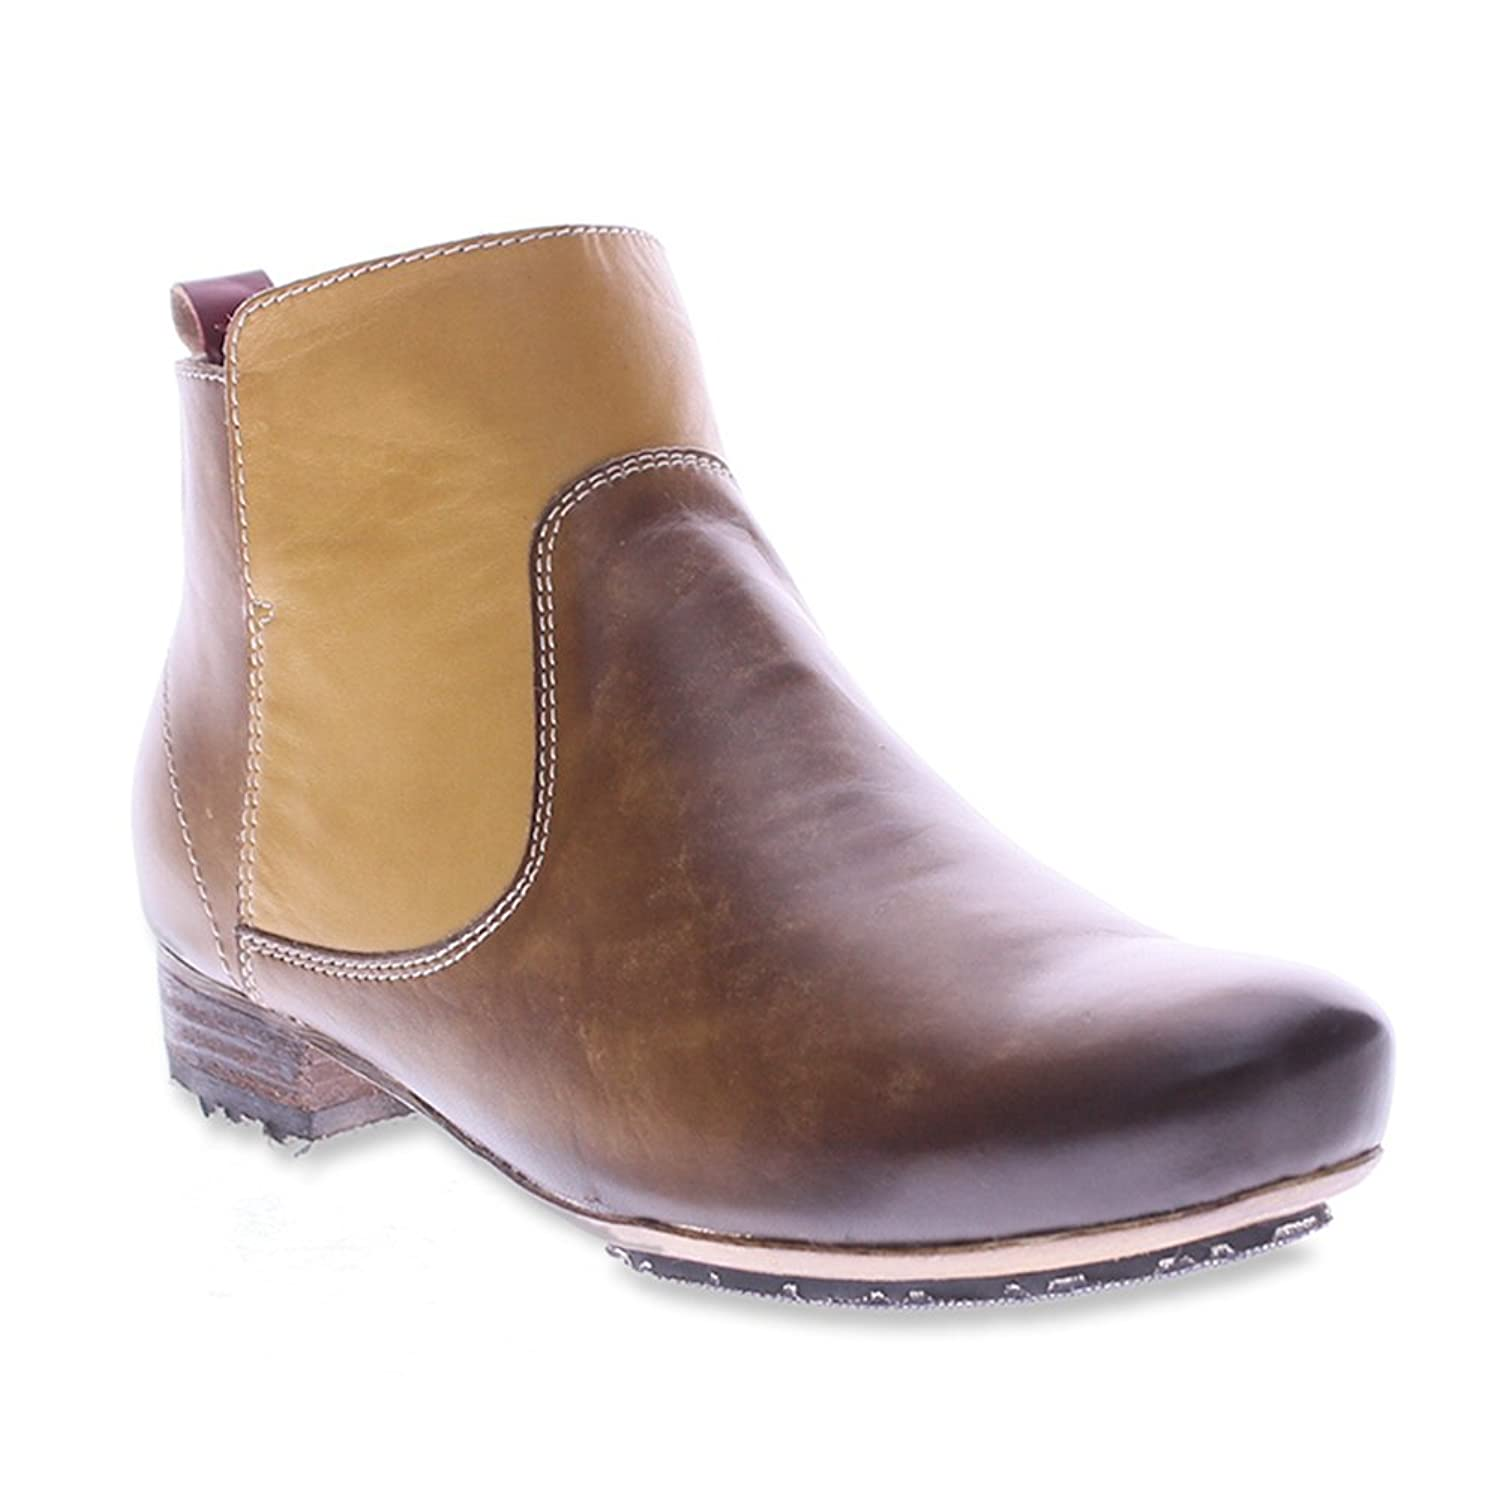 L'Artiste by Spring Step Women's Aladyn Boot